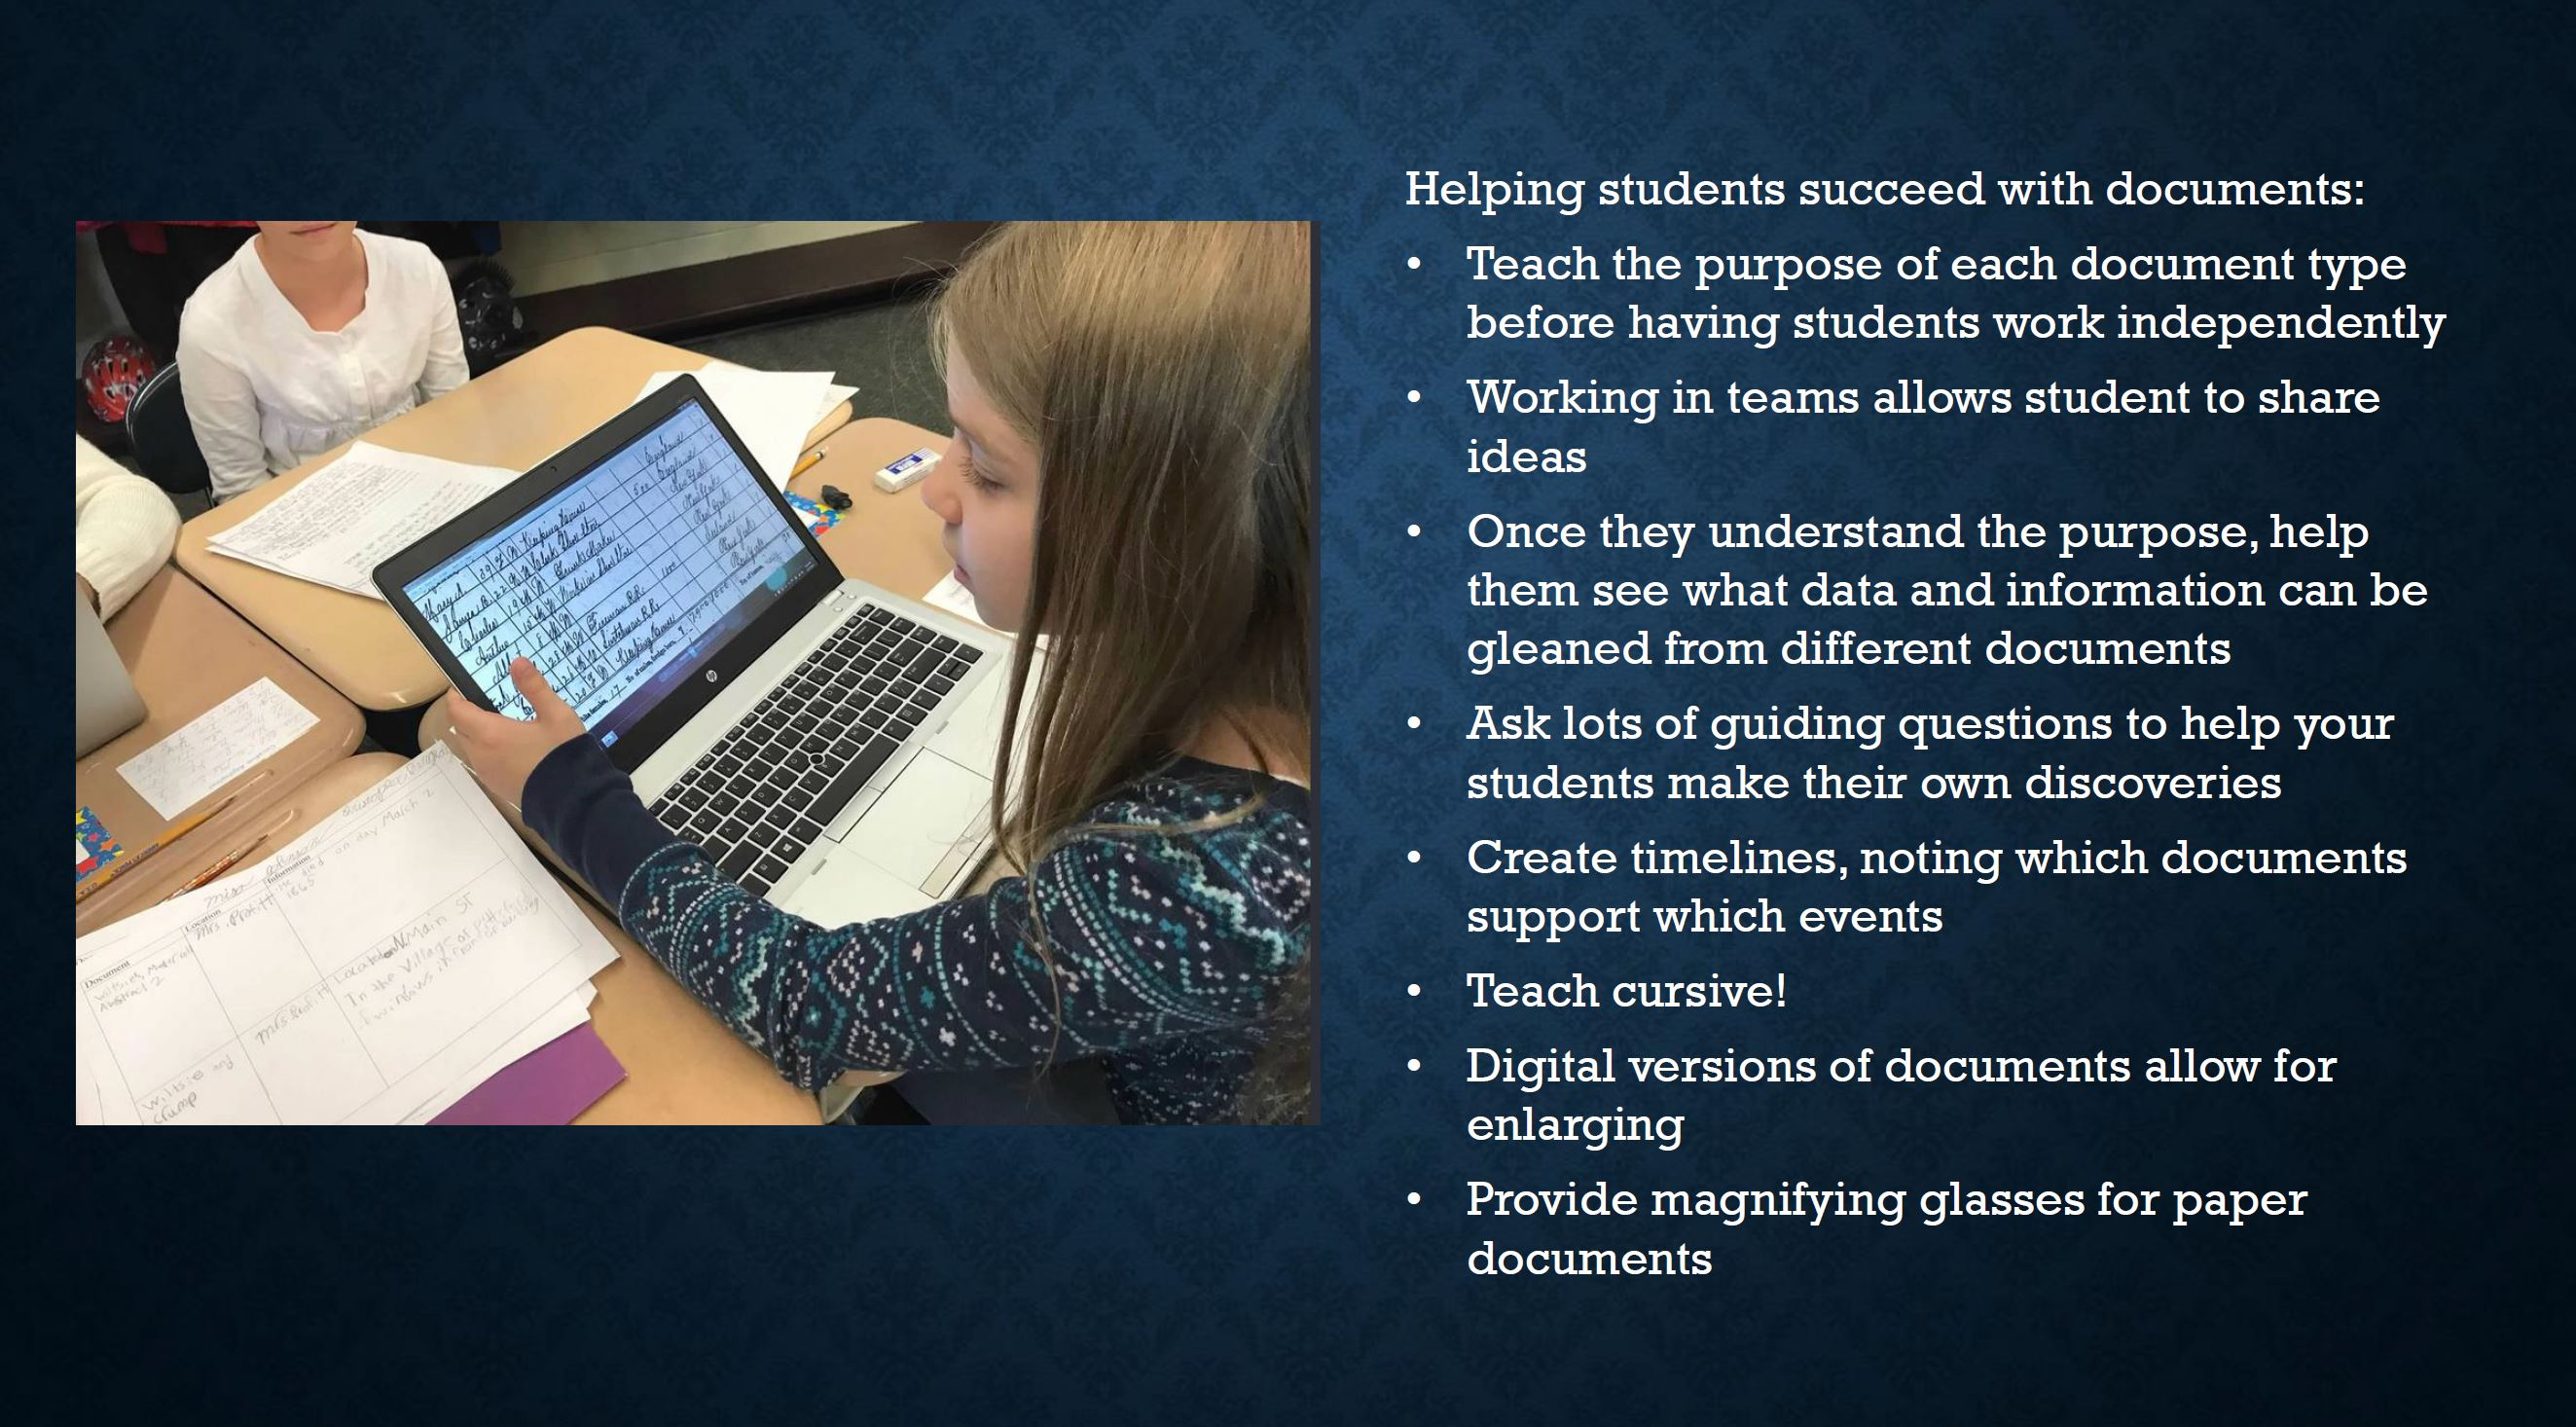 Ways to Help Students Work with Documents